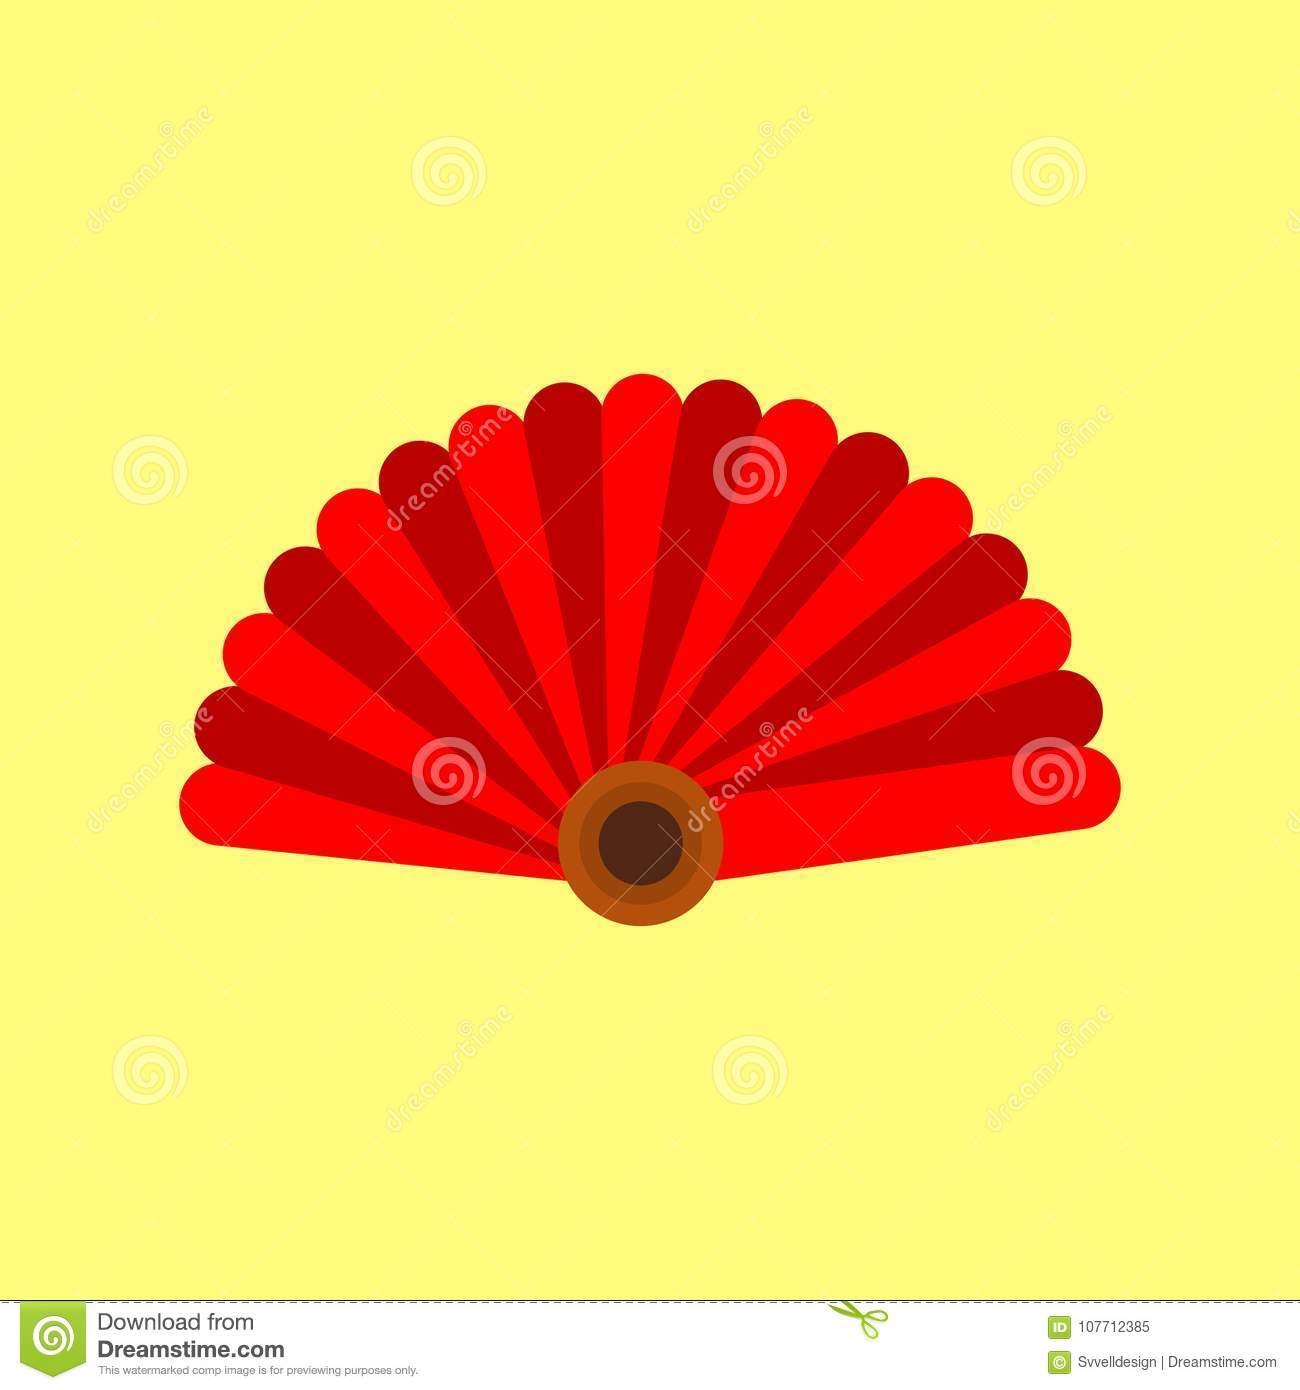 Chinese Fan Hand Stock Illustrations – 575 Chinese Fan Hand Stock ...